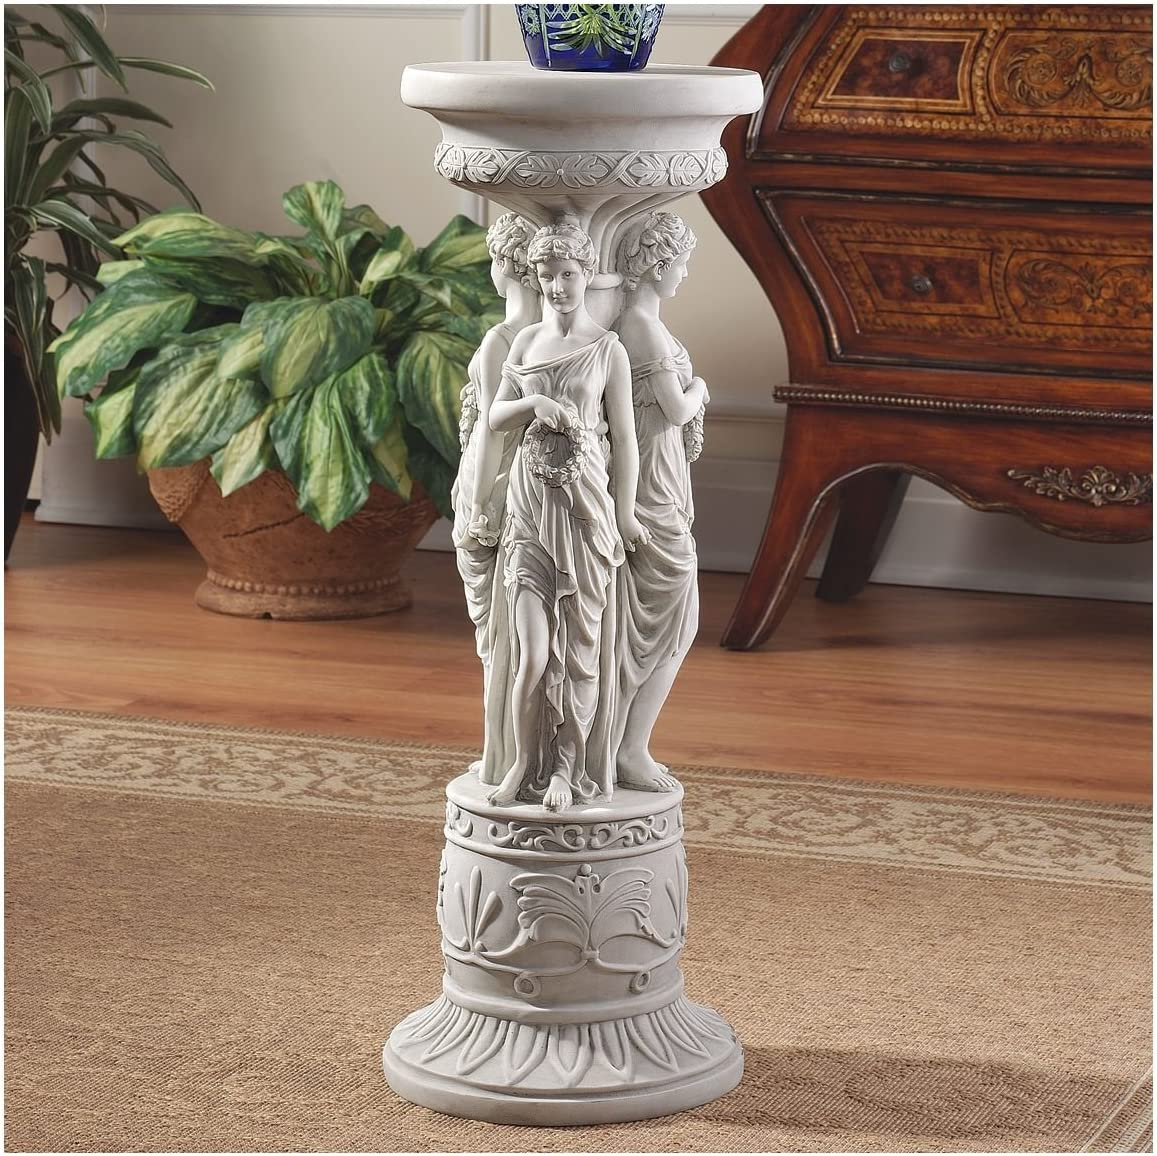 Amazon Com Design Toscano Ky992 Chatsworth Manor Neoclassical Furniture Pedestal Column Plant Stand Antique Stone Statues Garden Outdoor